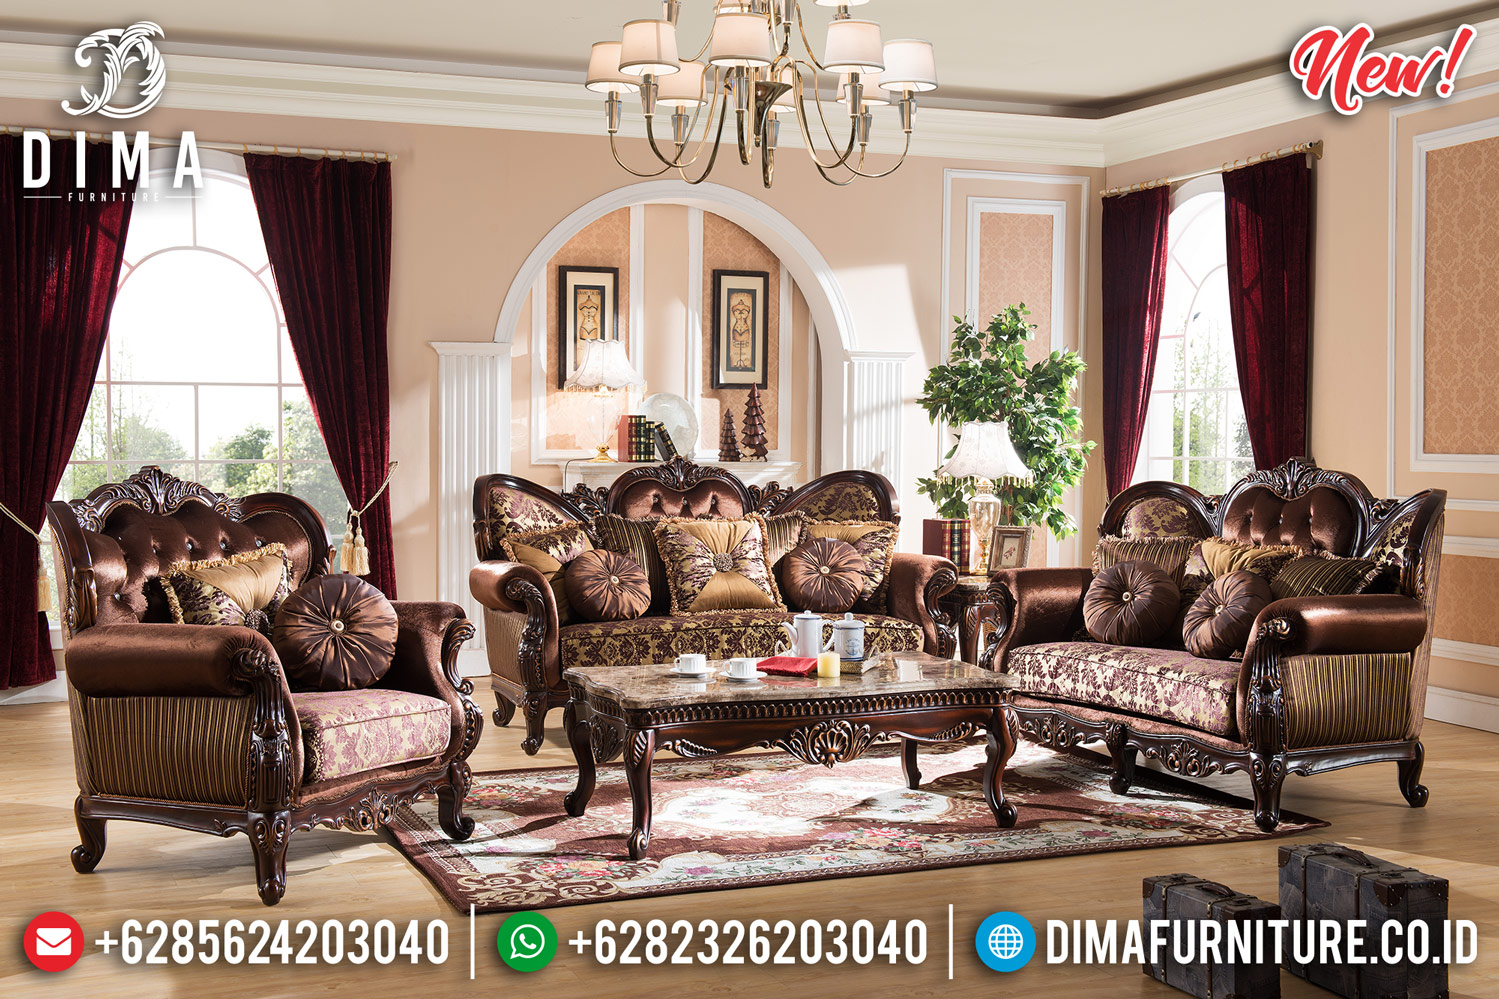 Sofa Tamu Jati Murah Ukiran Luxury Mebel Jepara Great Quality BT-0761